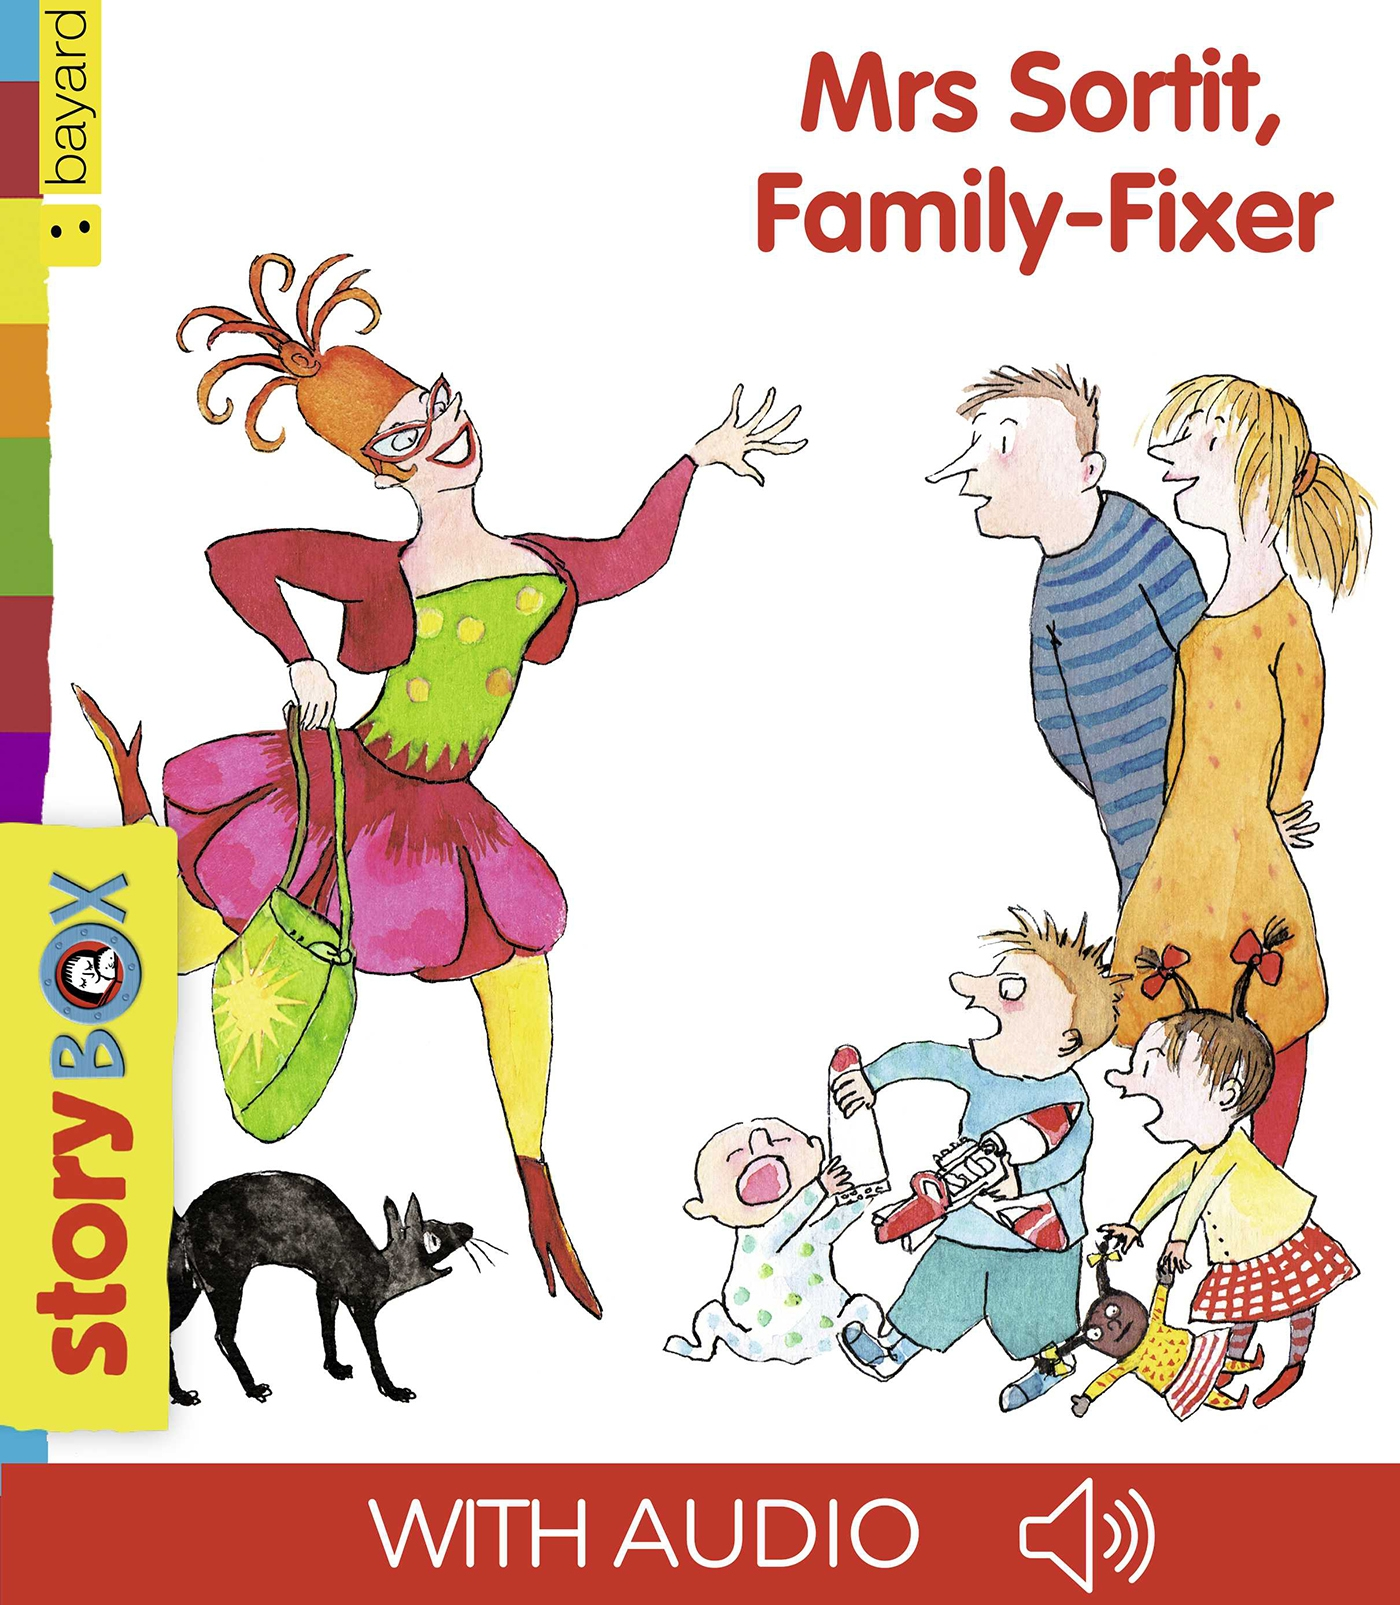 Mrs Sortit, Family-Fixer